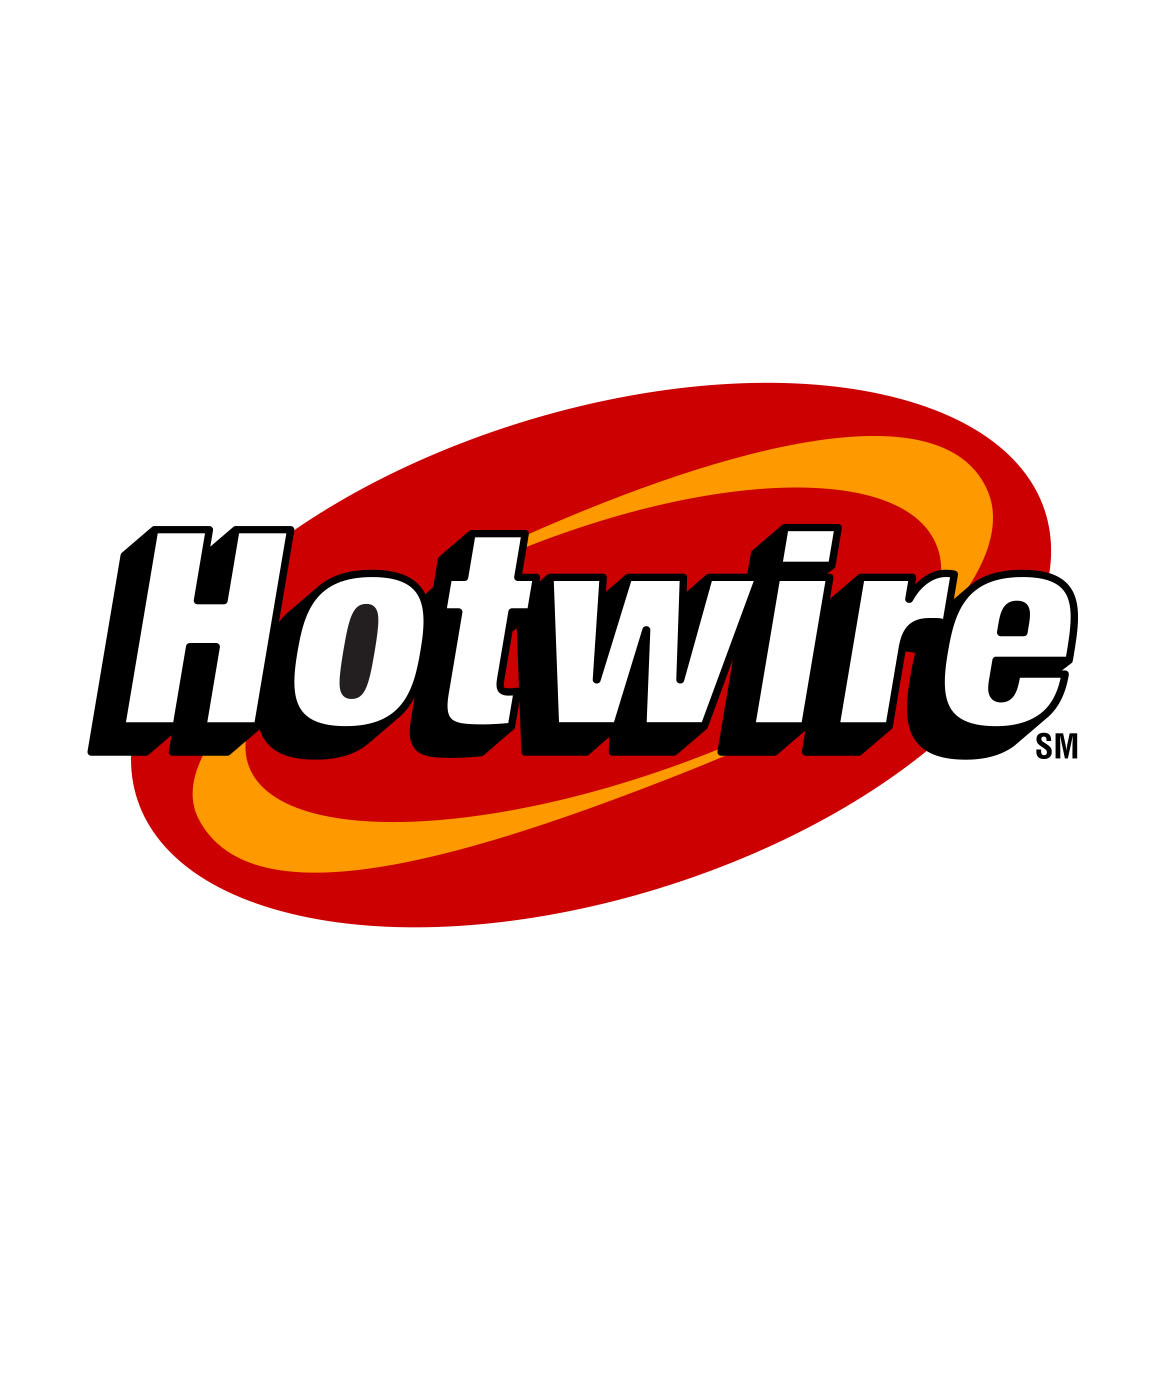 Hotwire logo clipart royalty free Hotwire - SullivanPerkins royalty free